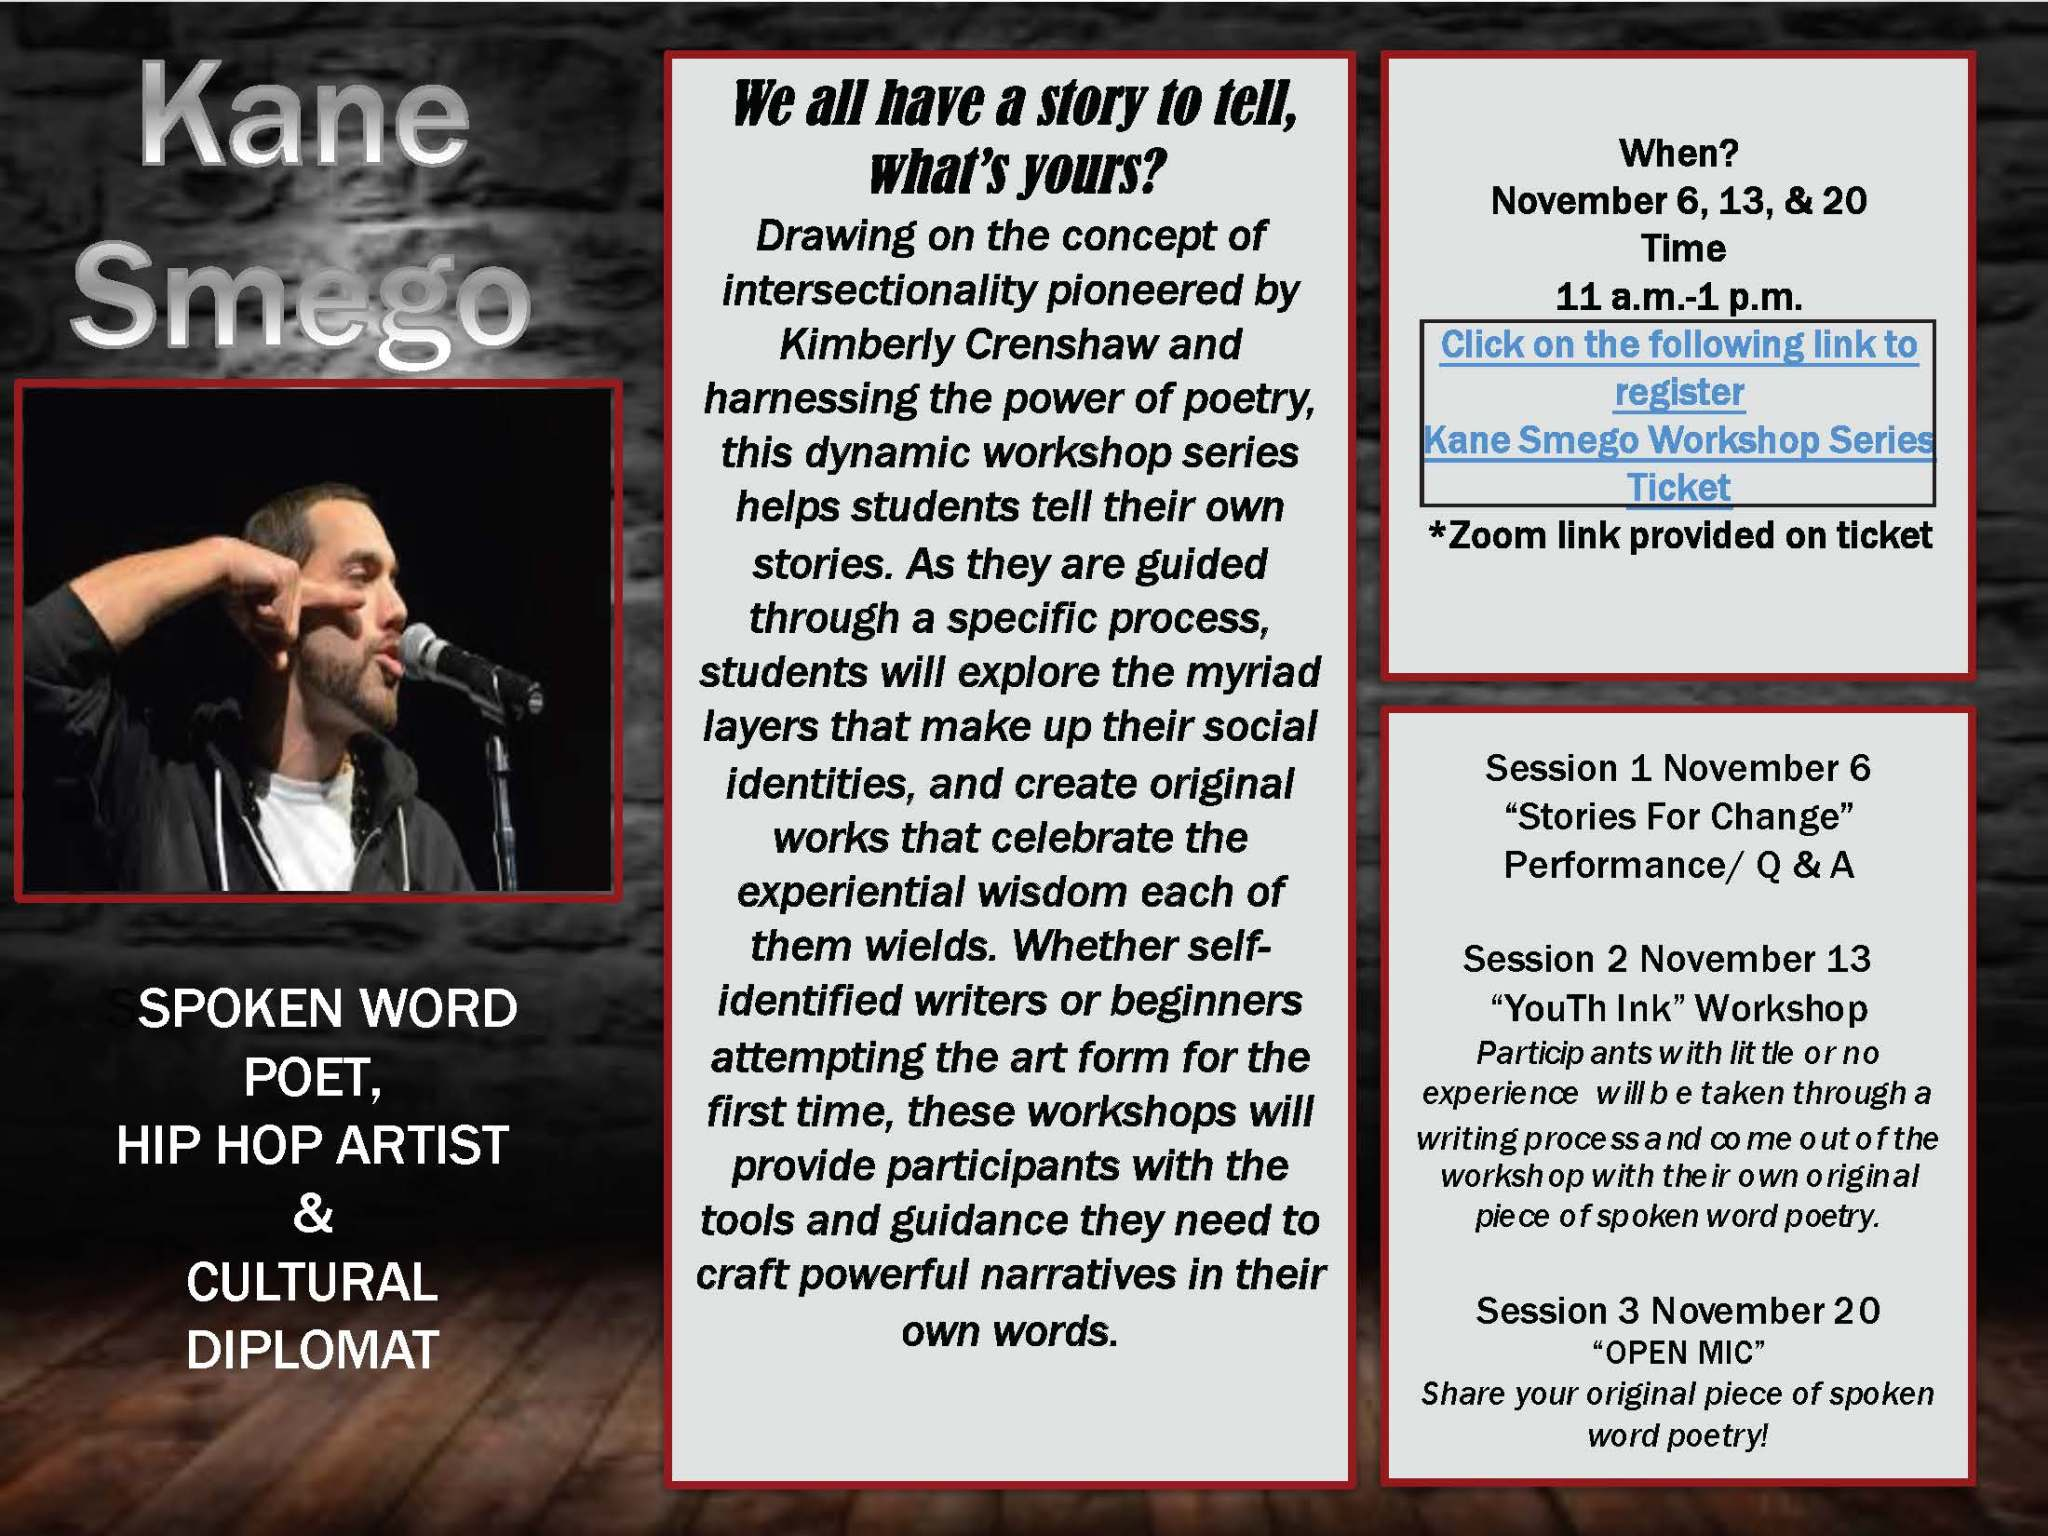 Kane Smego Workshop Series flyer